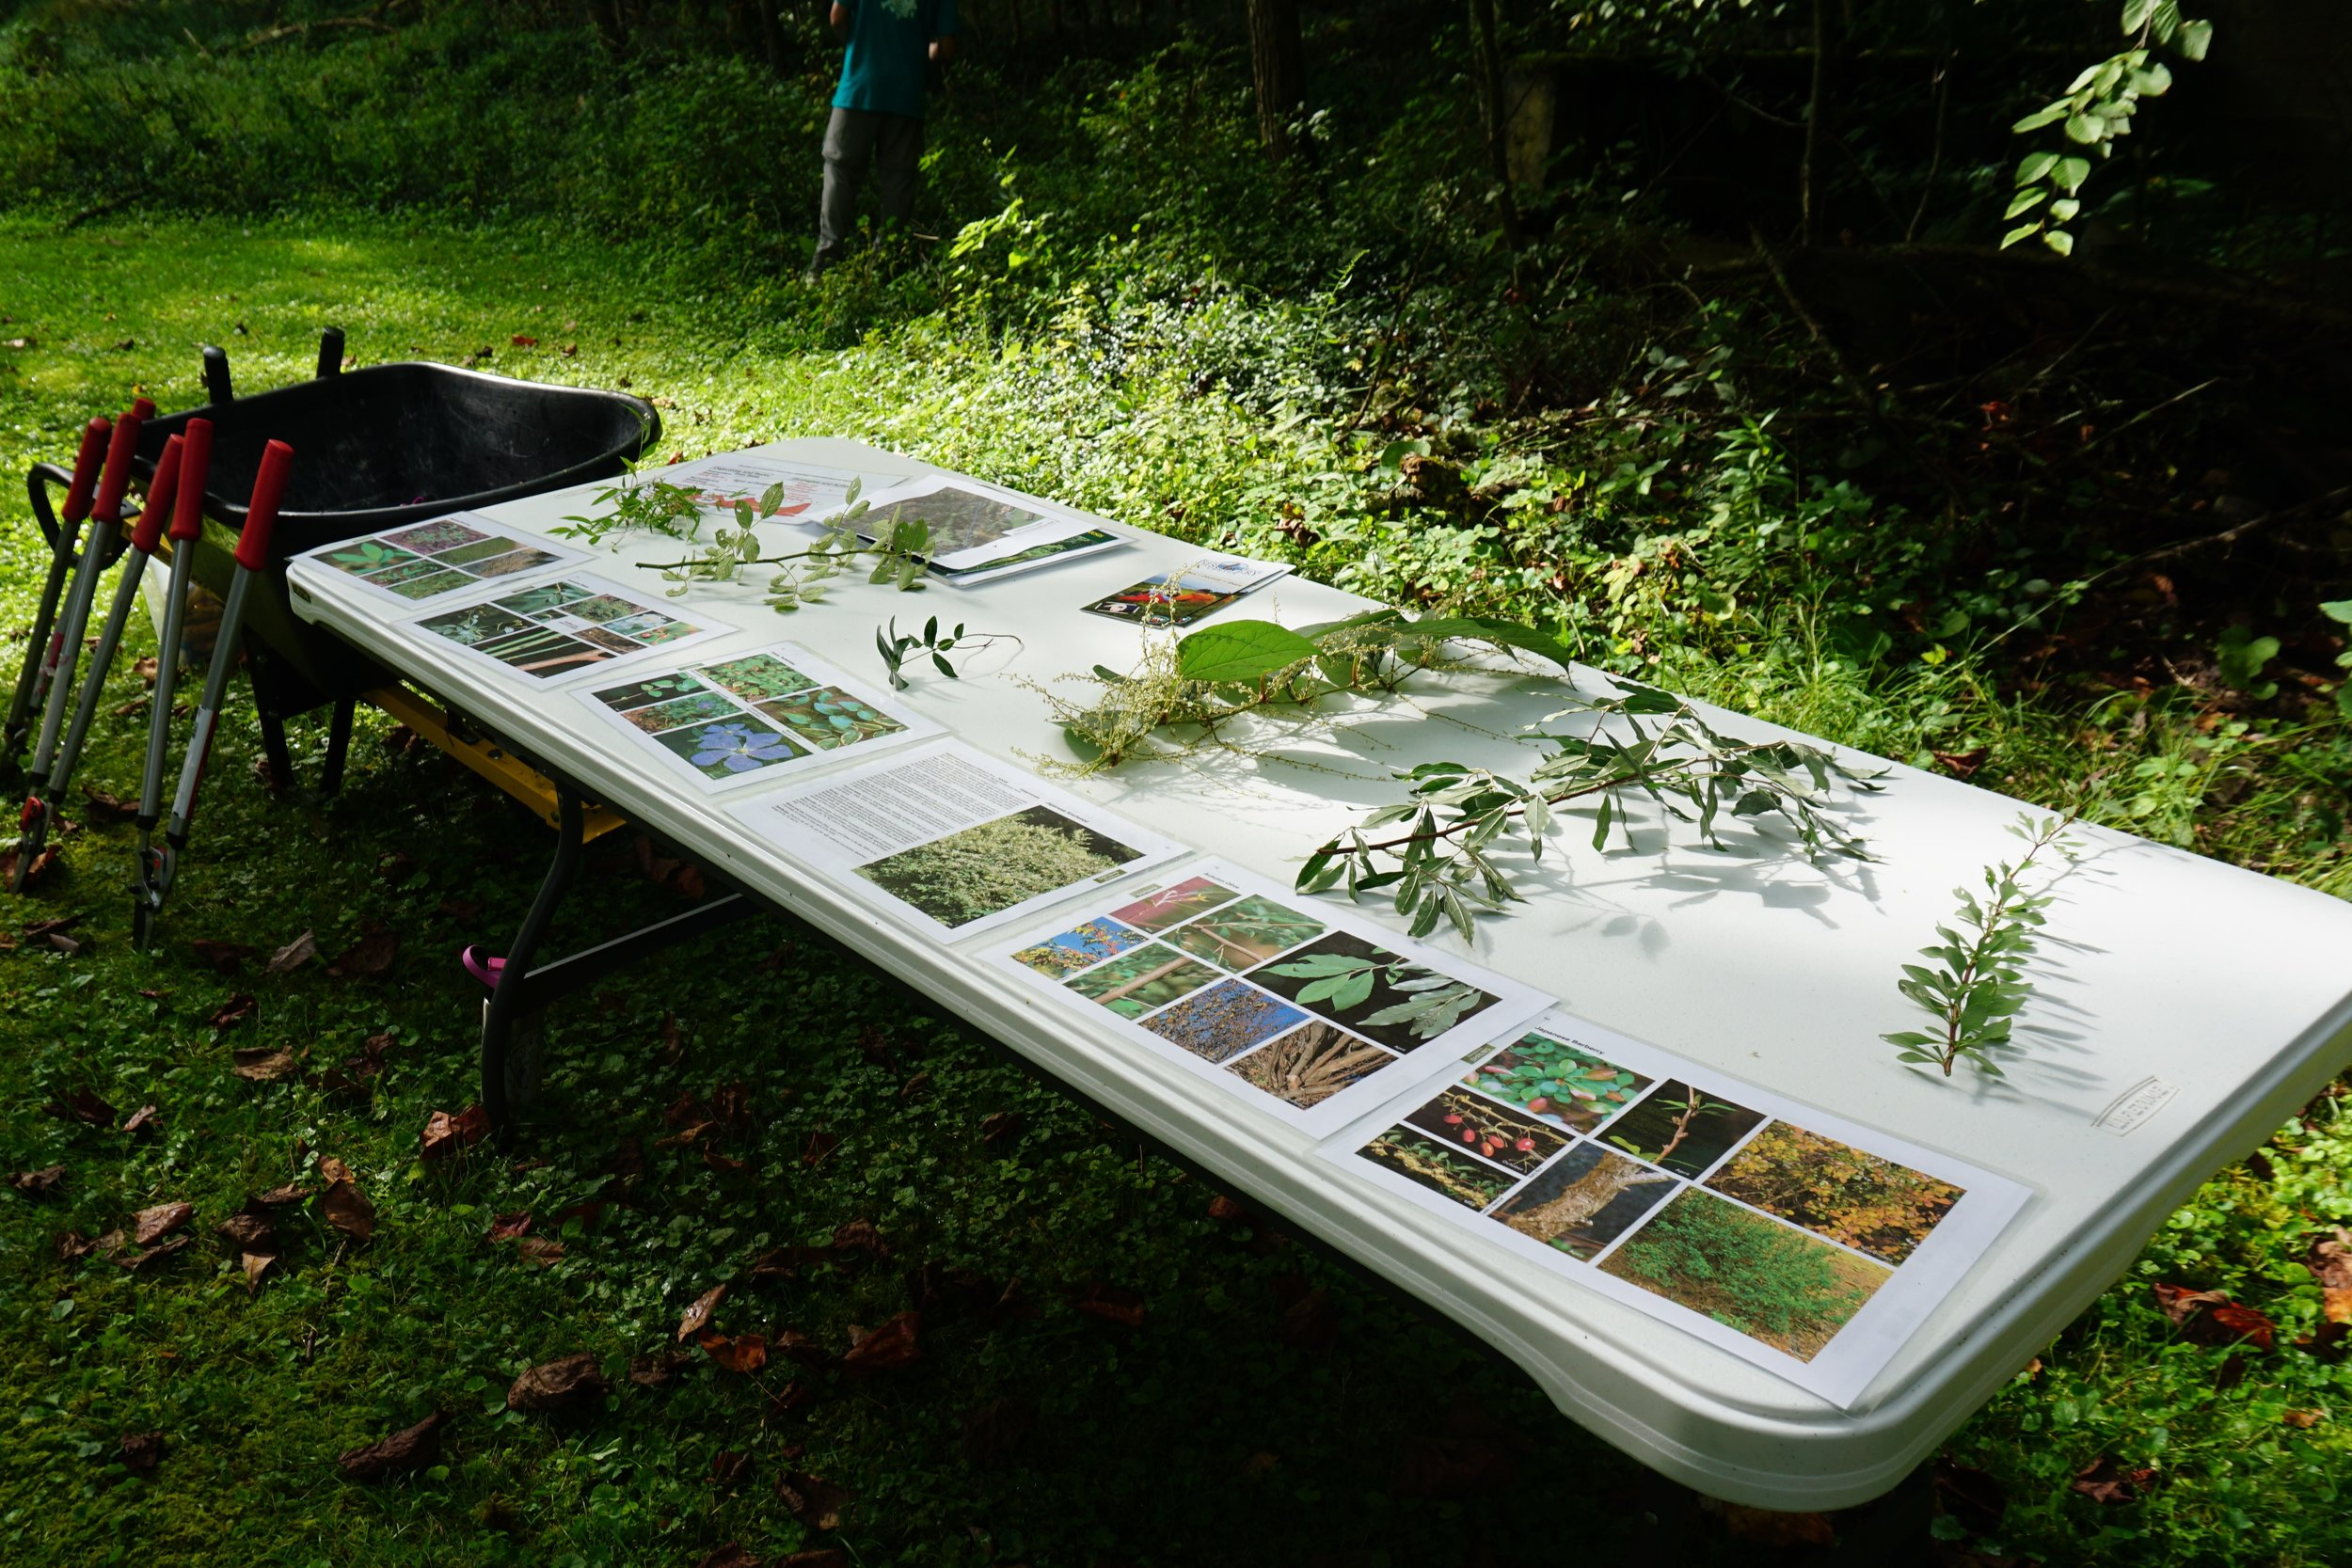 An introduction to non-native, invasive plants